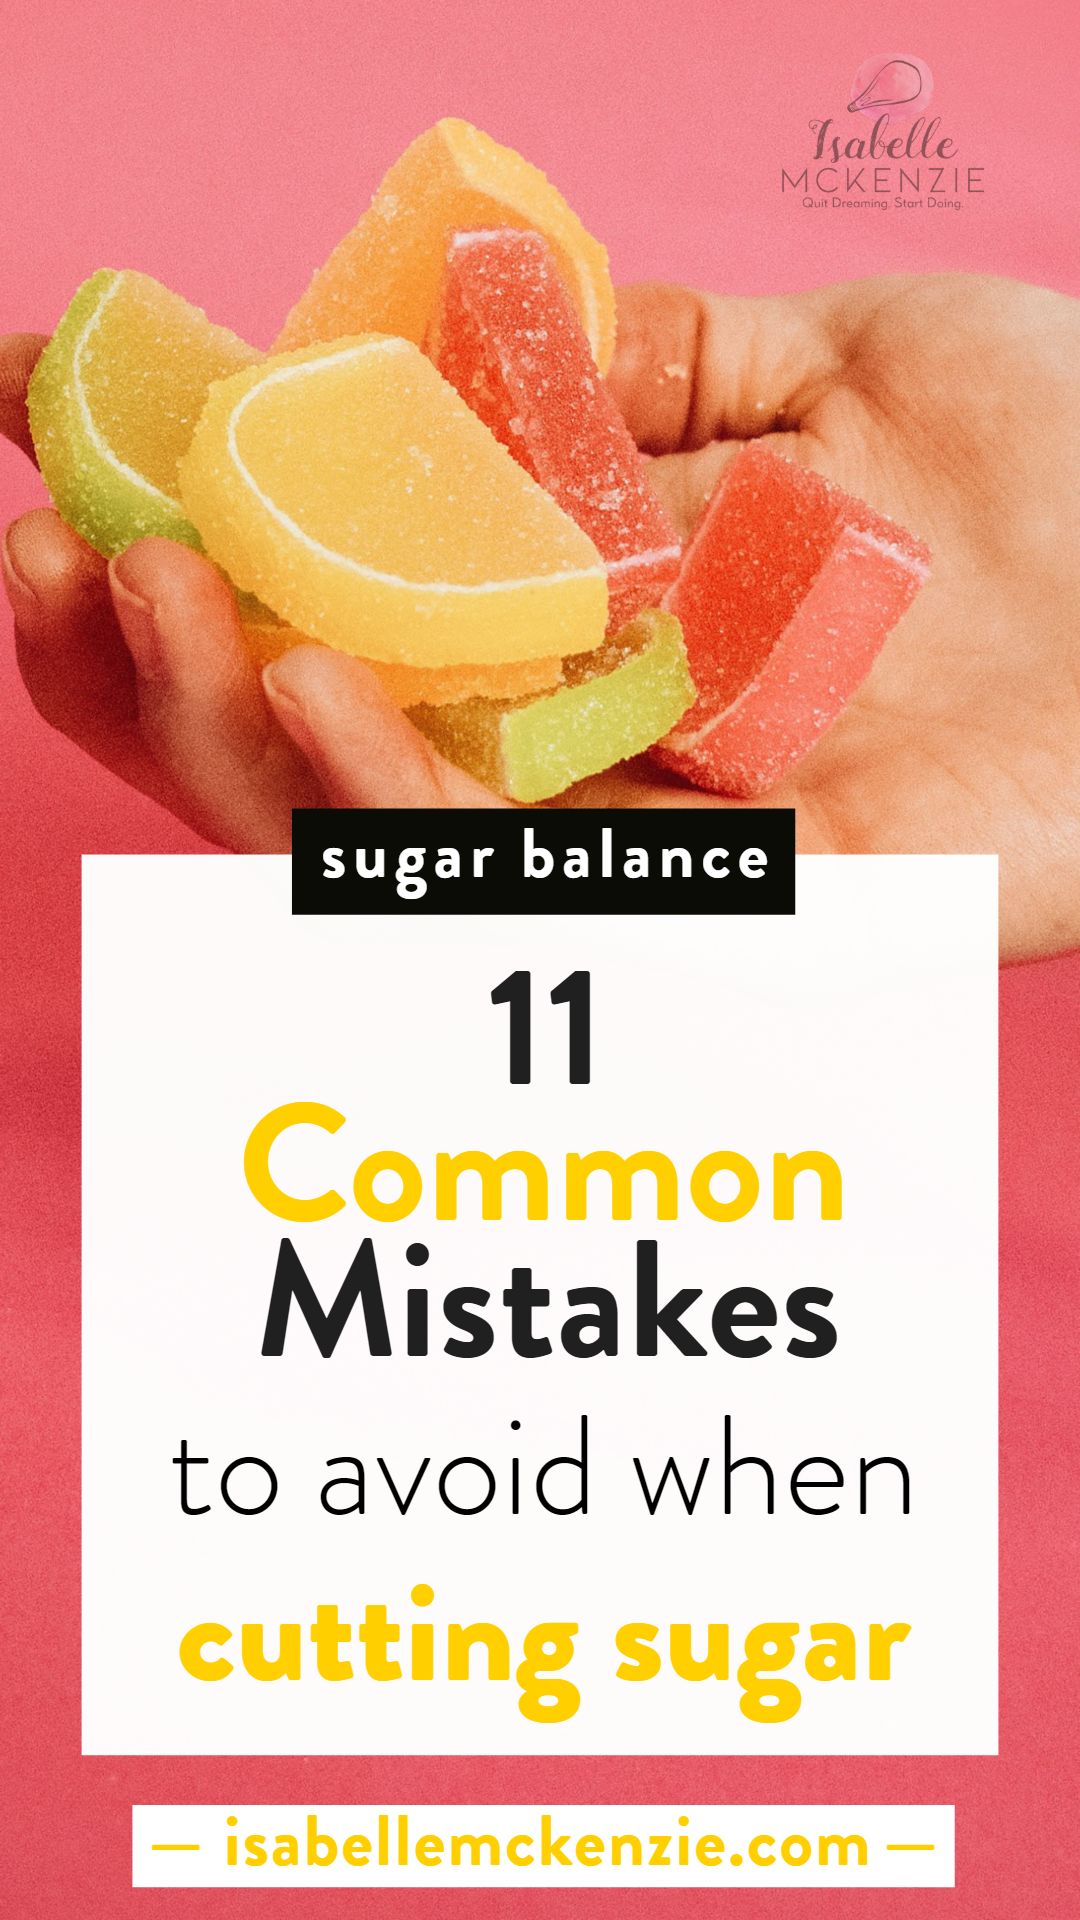 11 Common Mistakes to Avoid When Cutting Sugar - Isabelle McKenzie